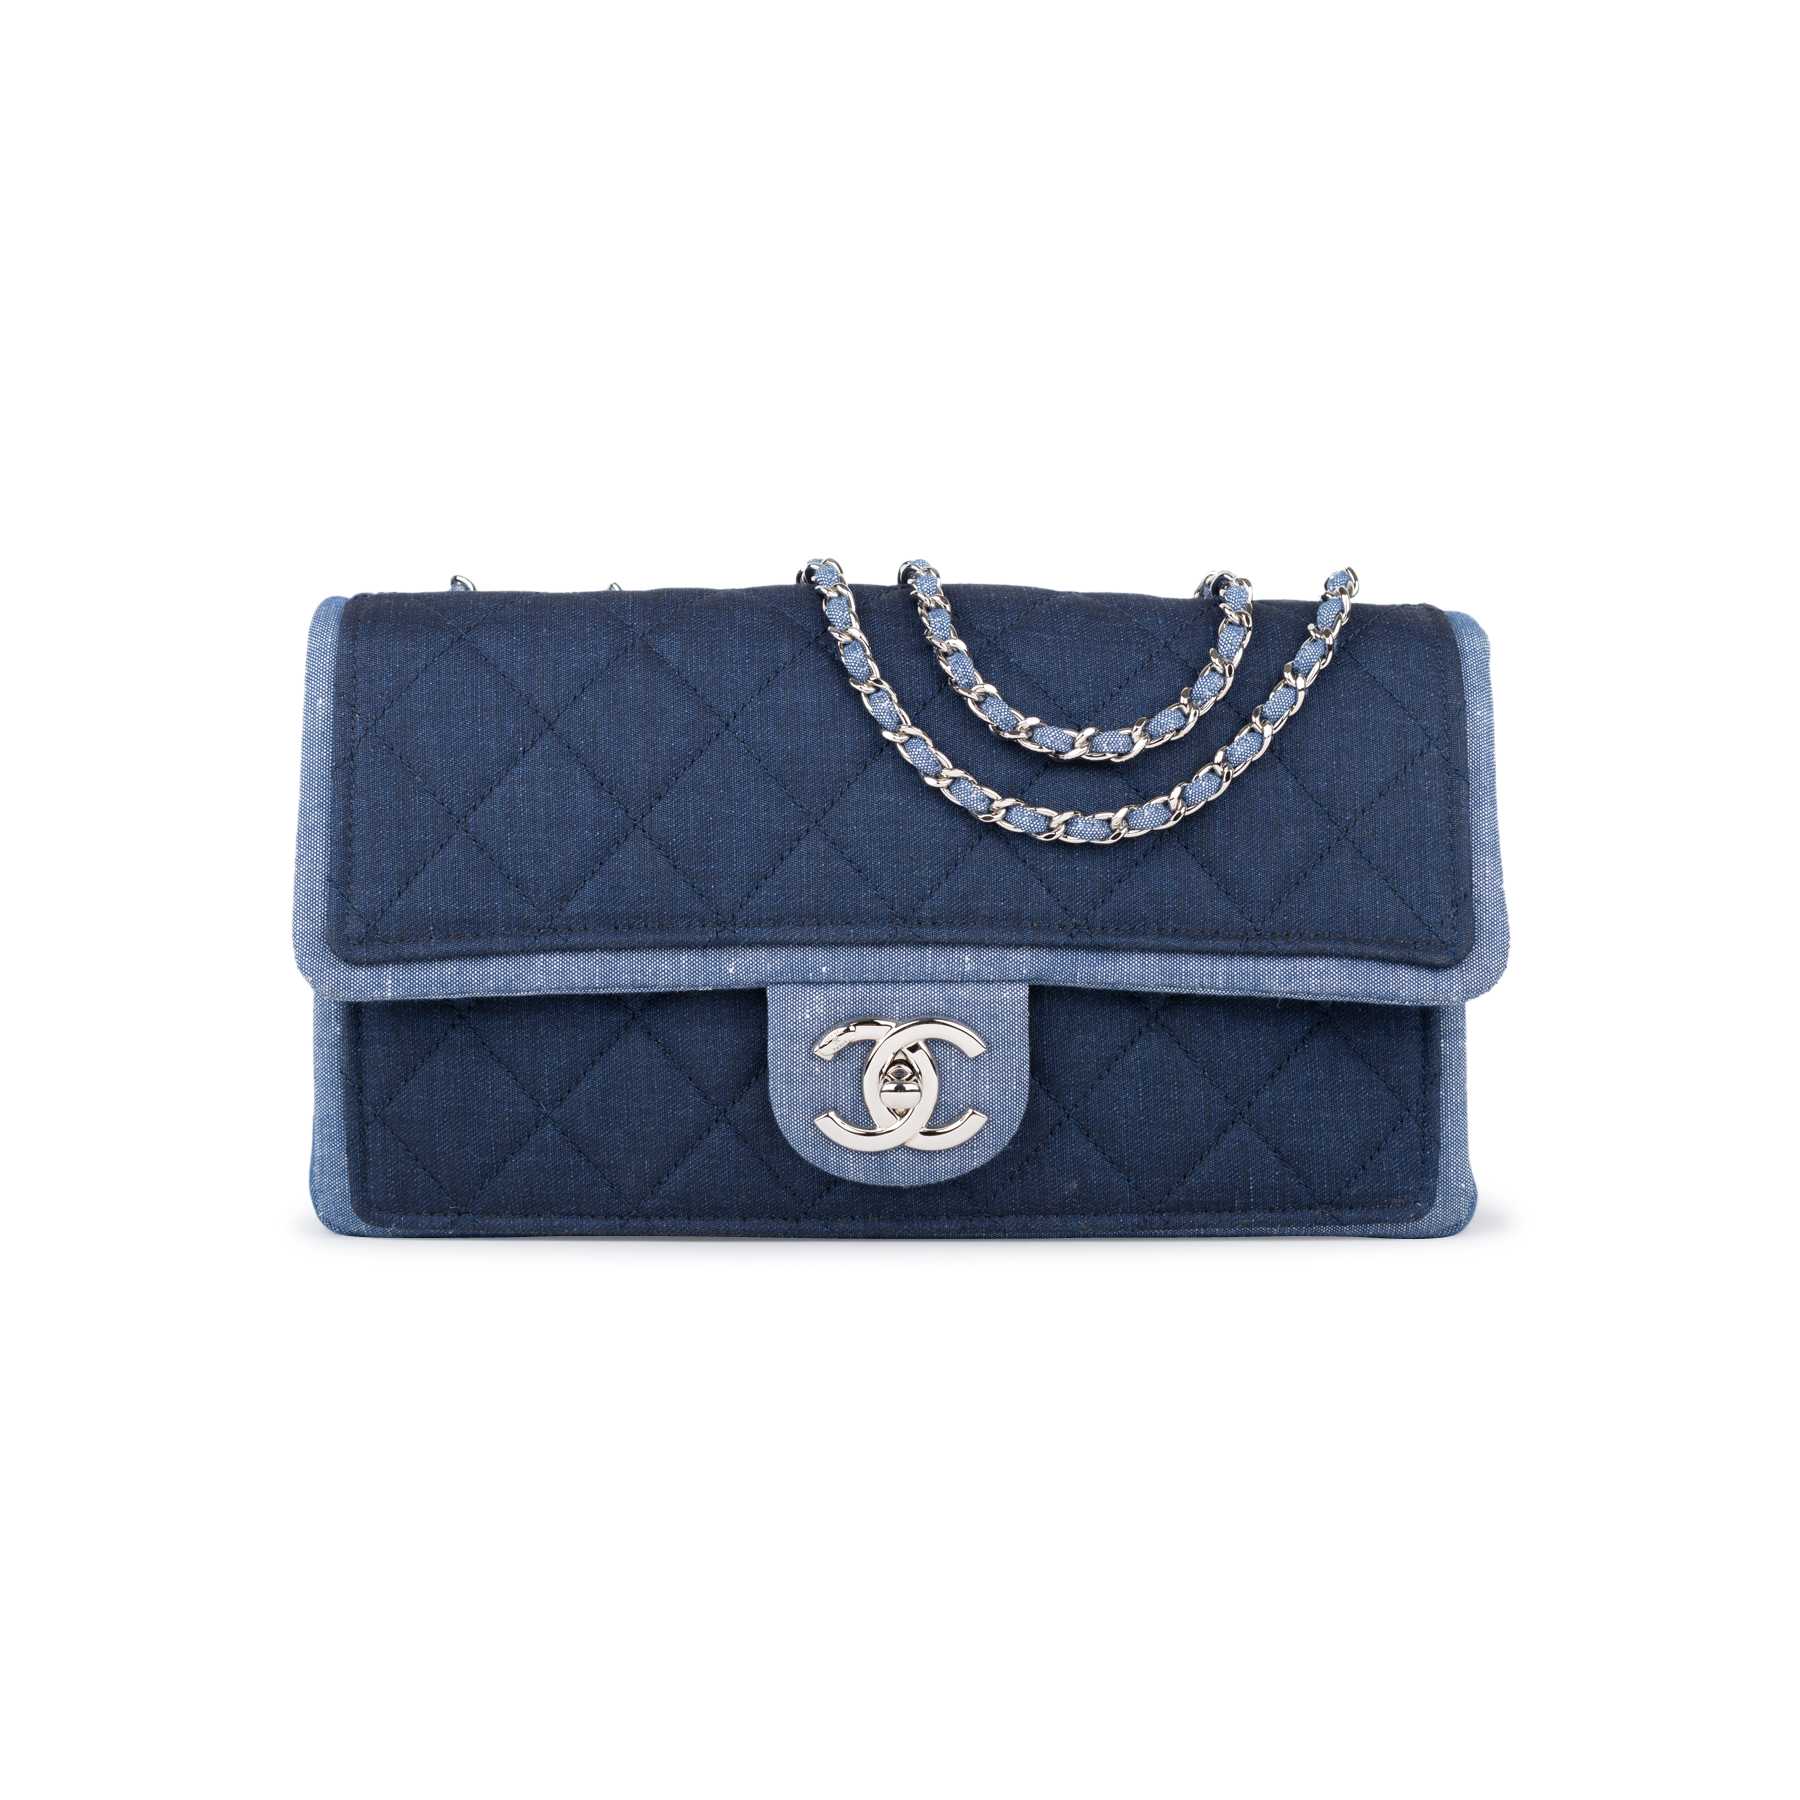 1729f1359084 Authentic Pre Owned Chanel Denim Flap Bag With Charm Pss 136